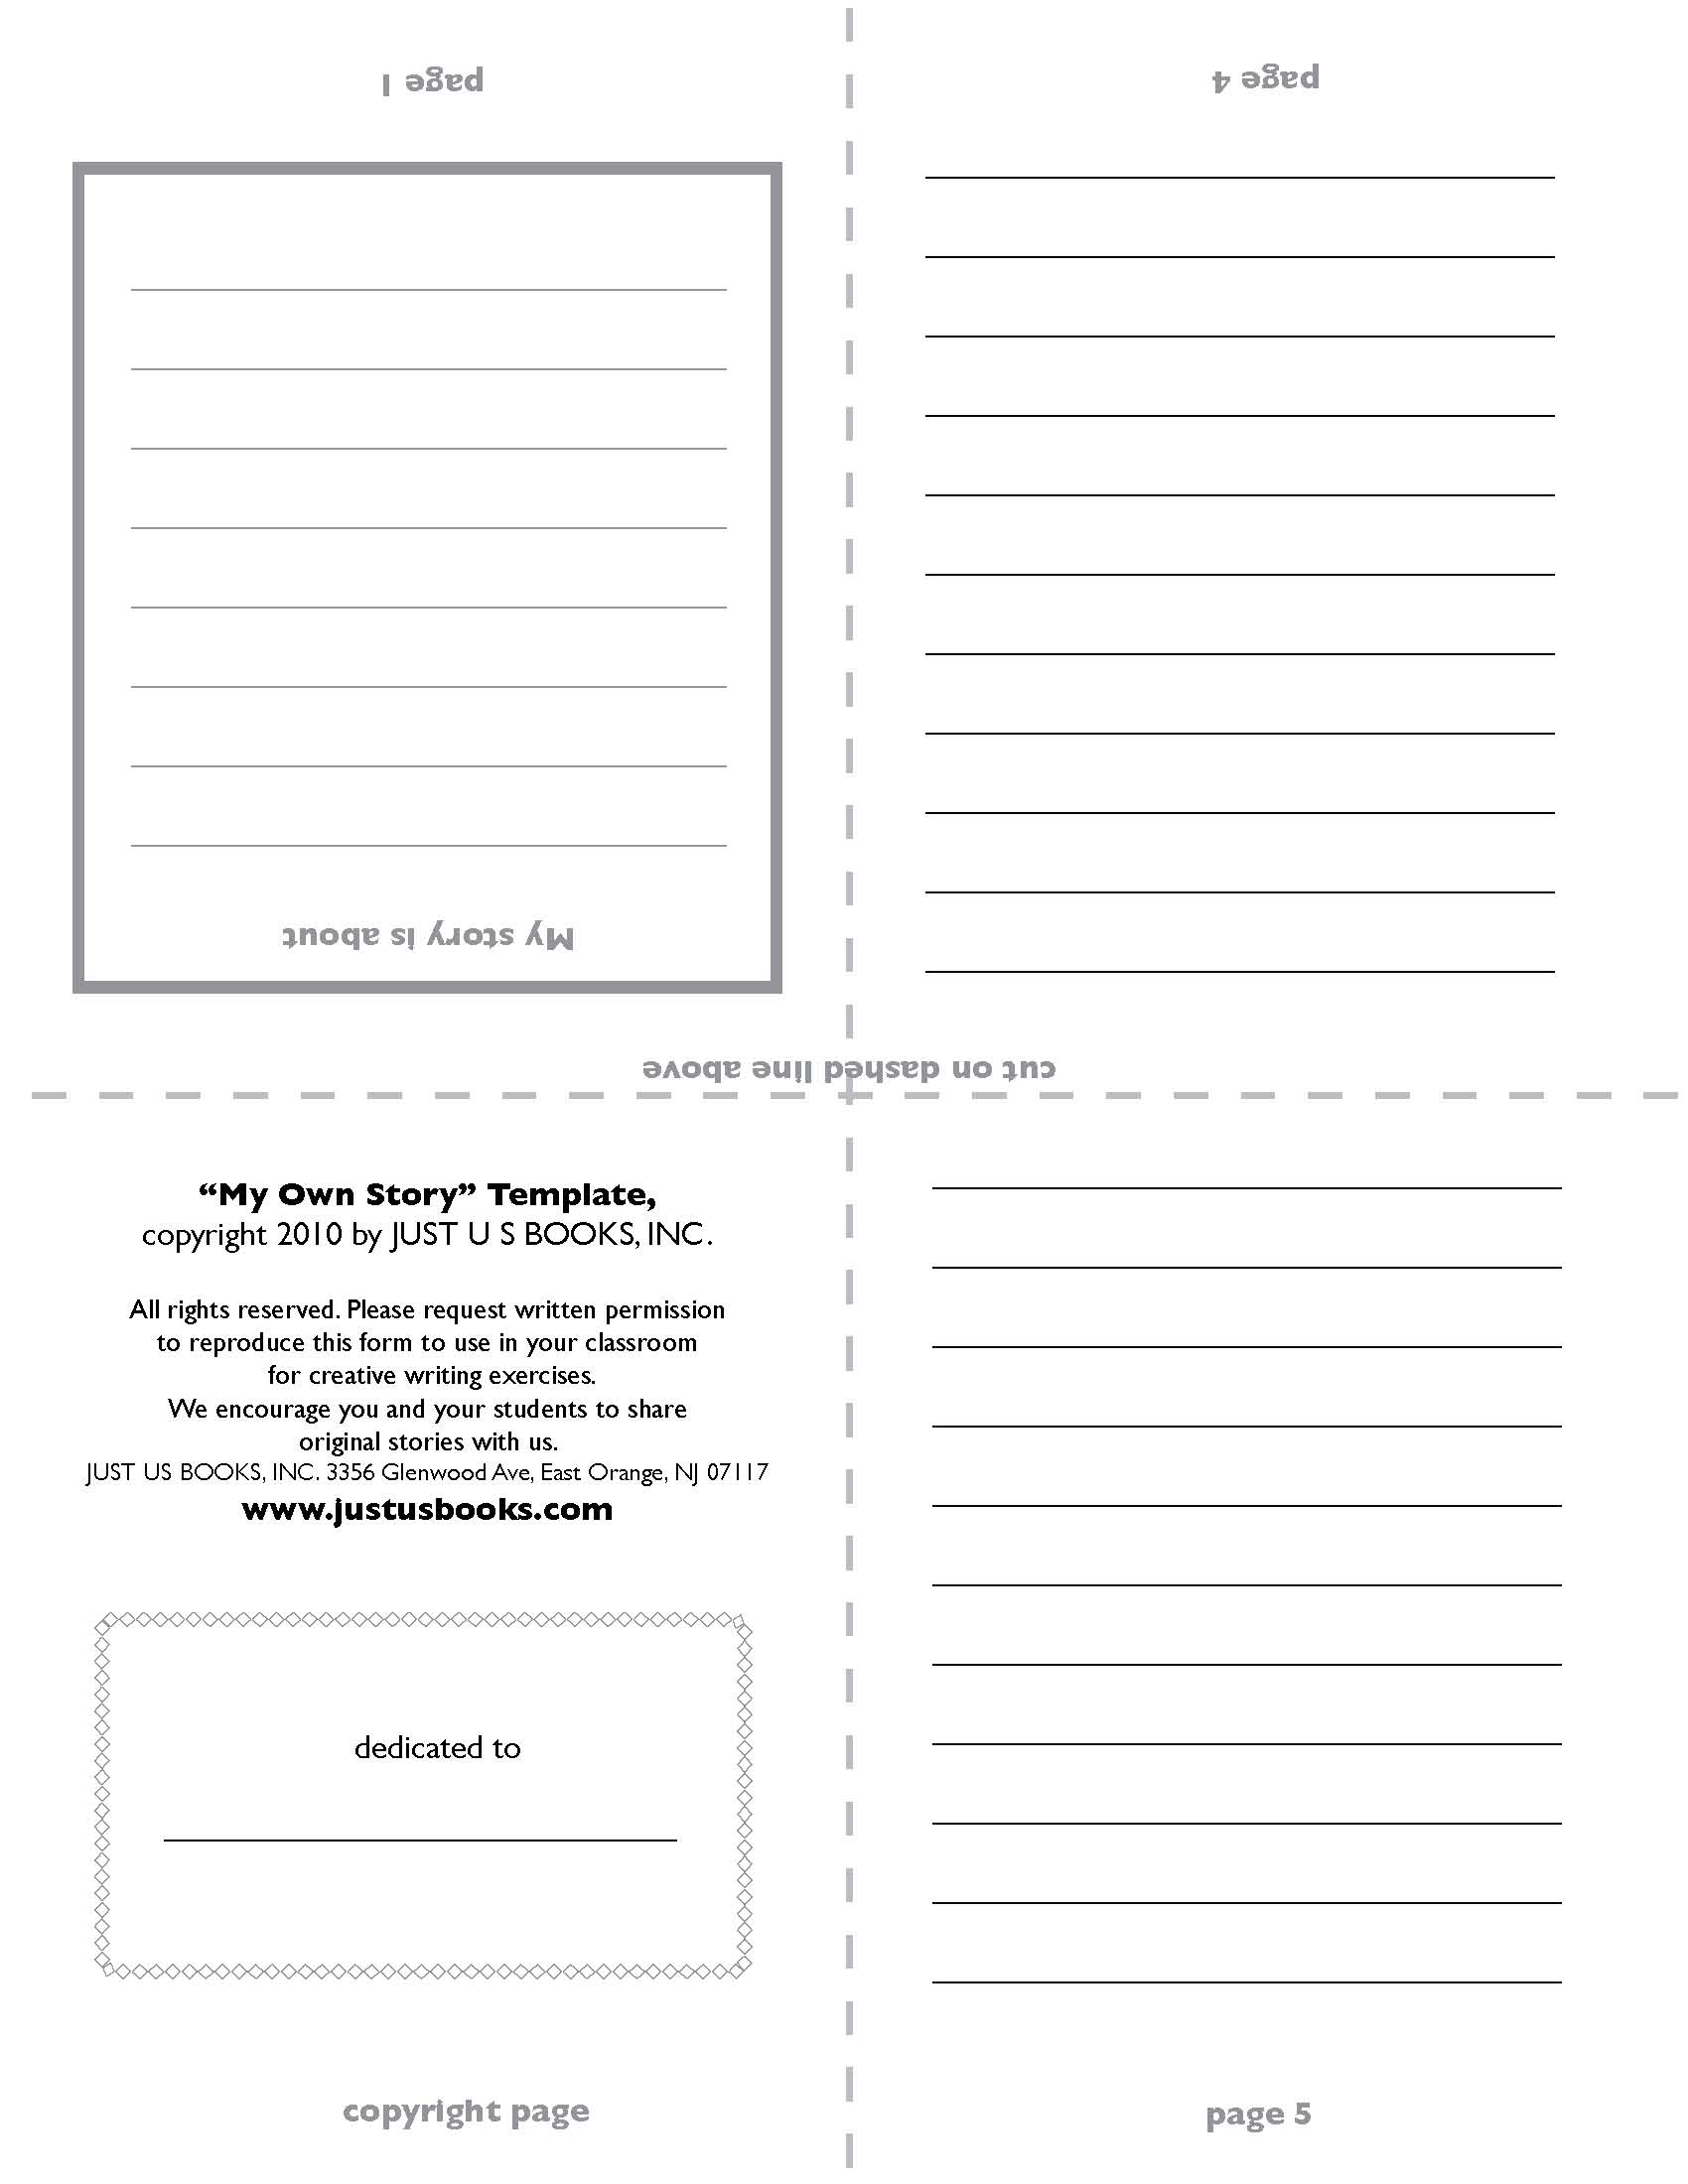 Story Book Cover Template ~ Cheryl hudson shares stories at mlk charter school in new